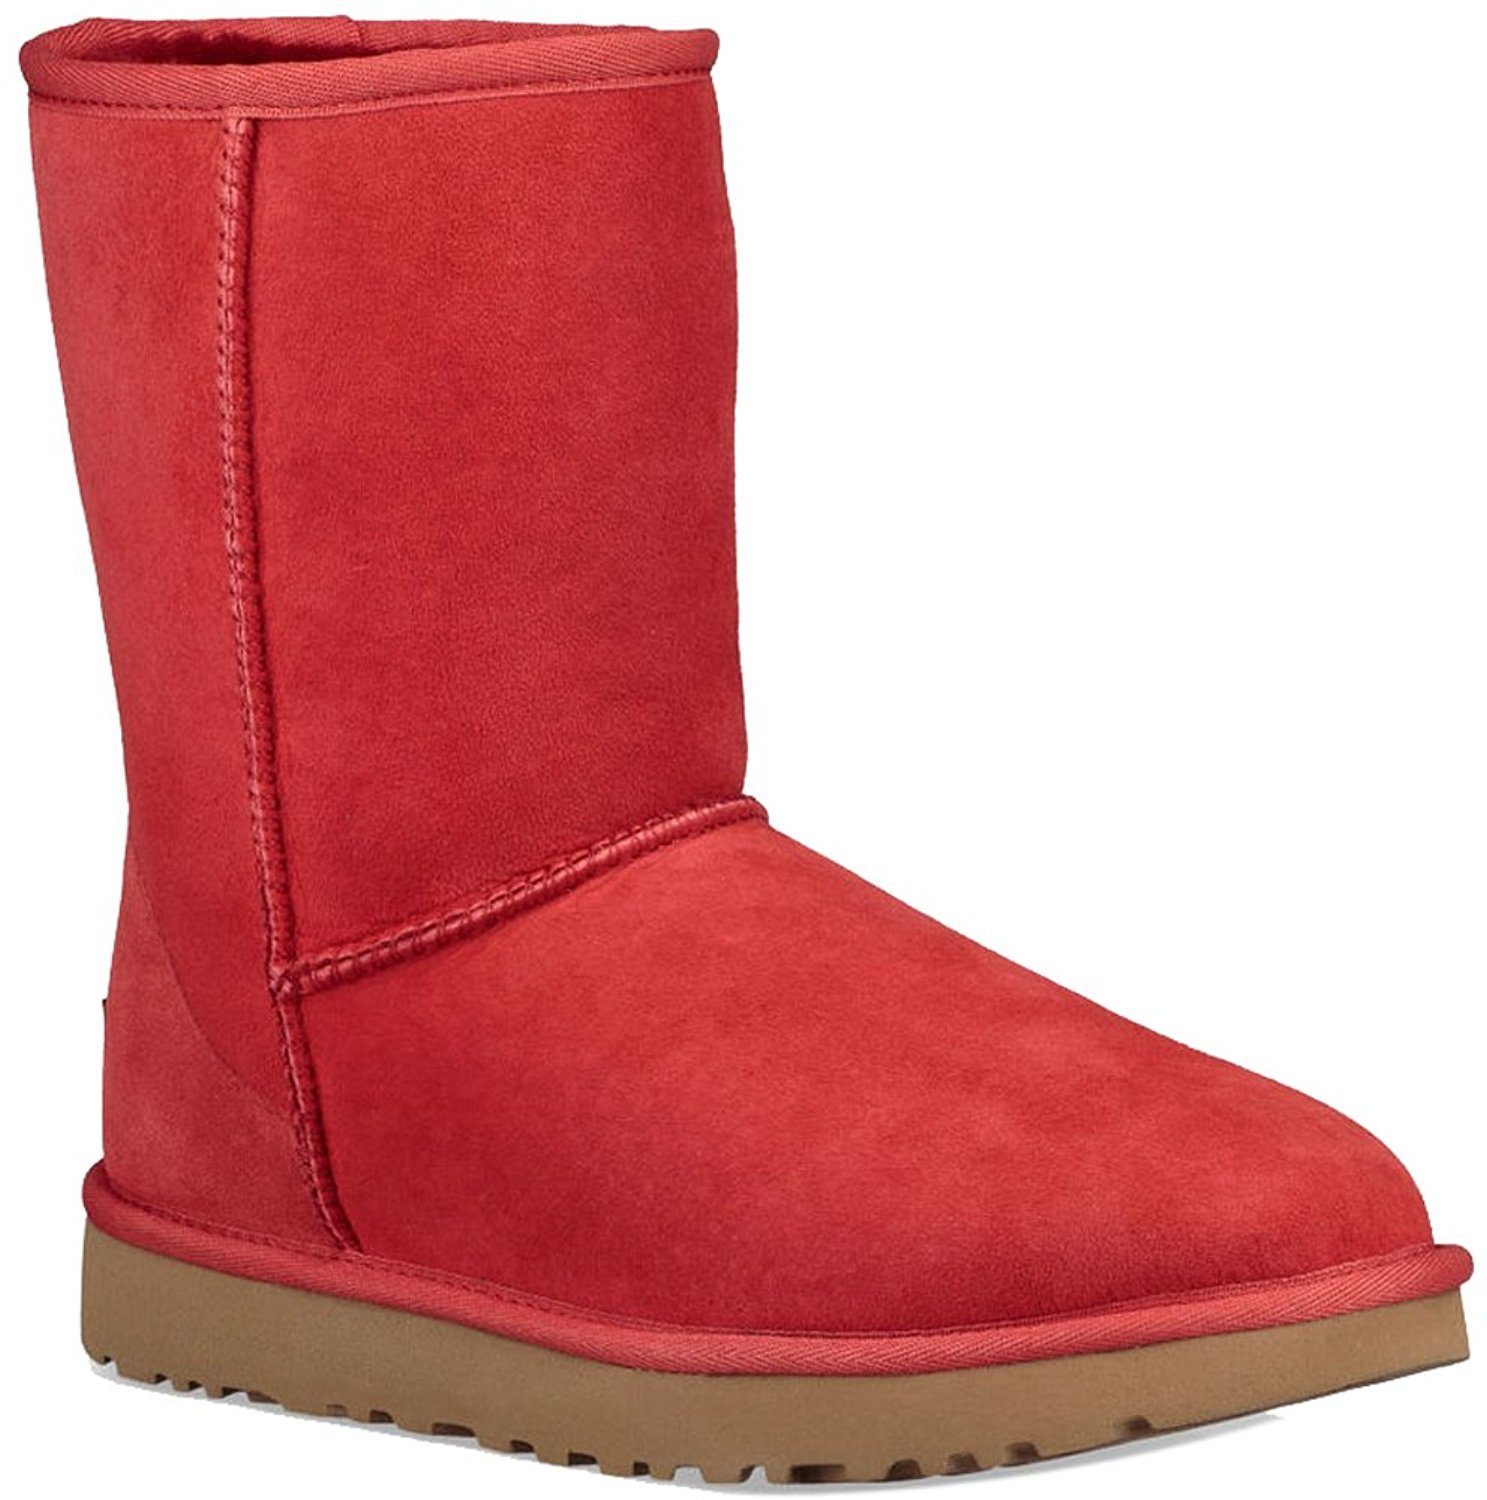 UGG Women's Classic Short II, Ribbon Red, 9 M US by UGG